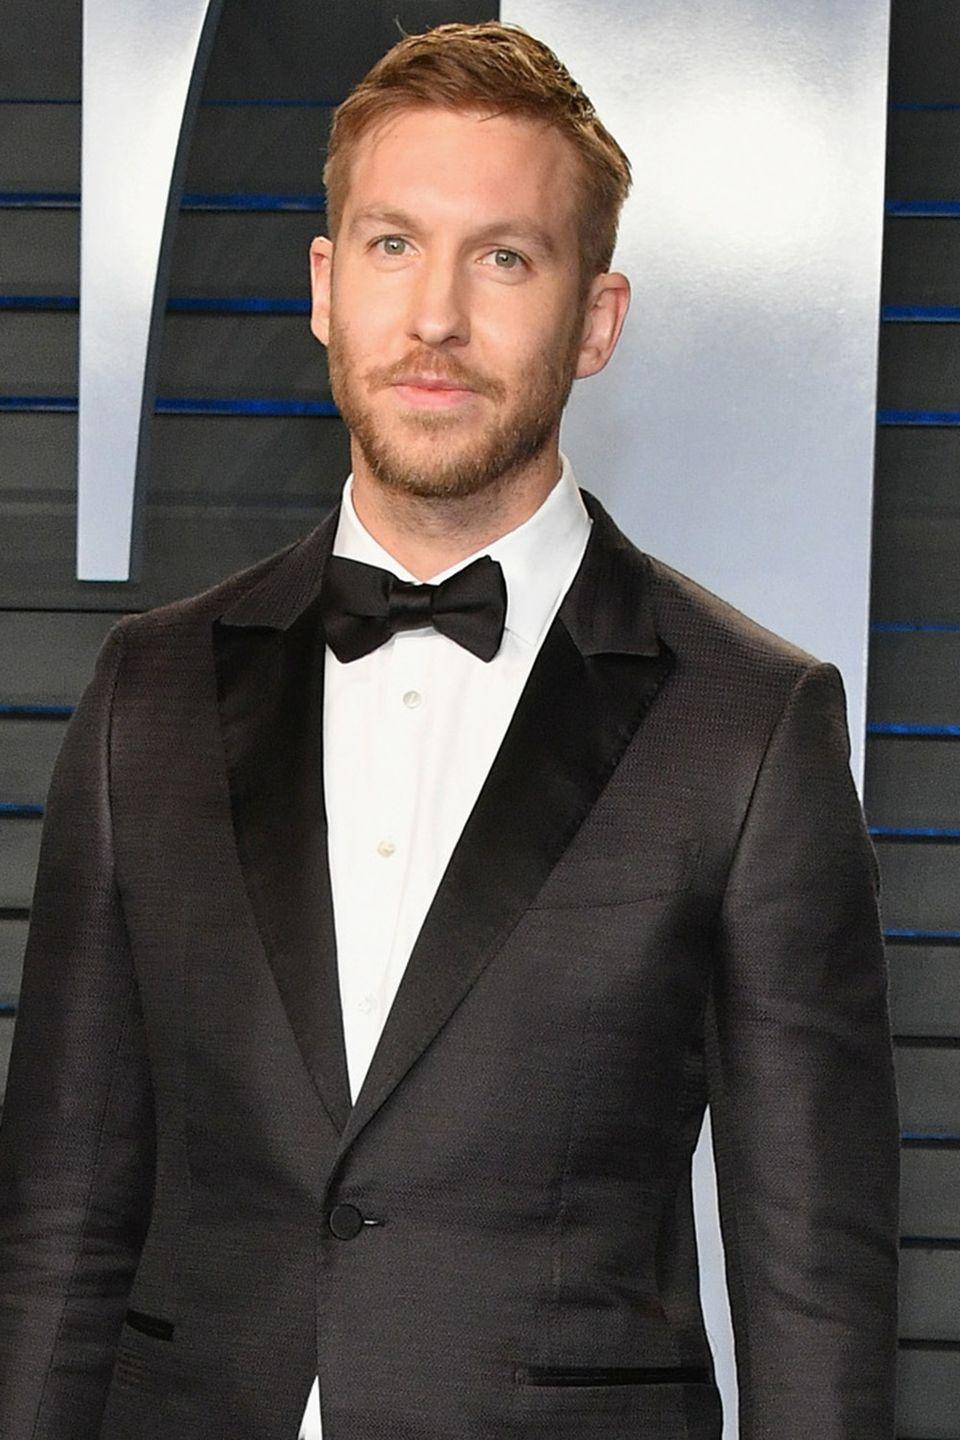 """<p><strong>Born</strong>: Adam Richard Wiles</p><p>Fans were a little confused when Taylor Swift gave her former boyfriend a shout-out at the iHeart Radio Music Awards, calling him """"Adam."""" In a later interview with <em><a href=""""https://www.shortlist.com/"""" rel=""""nofollow noopener"""" target=""""_blank"""" data-ylk=""""slk:Shortlist"""" class=""""link rapid-noclick-resp"""">Shortlist</a></em>, Harris explained that he adopted his stage name in an attempt to be more """"racially ambiguous.""""</p><p>""""My first single was more of a soul track, and I thought Calvin Harris sounded a bit more racially ambiguous. I thought people might not know if I was black or not. After that, I was stuck with it.""""</p>"""